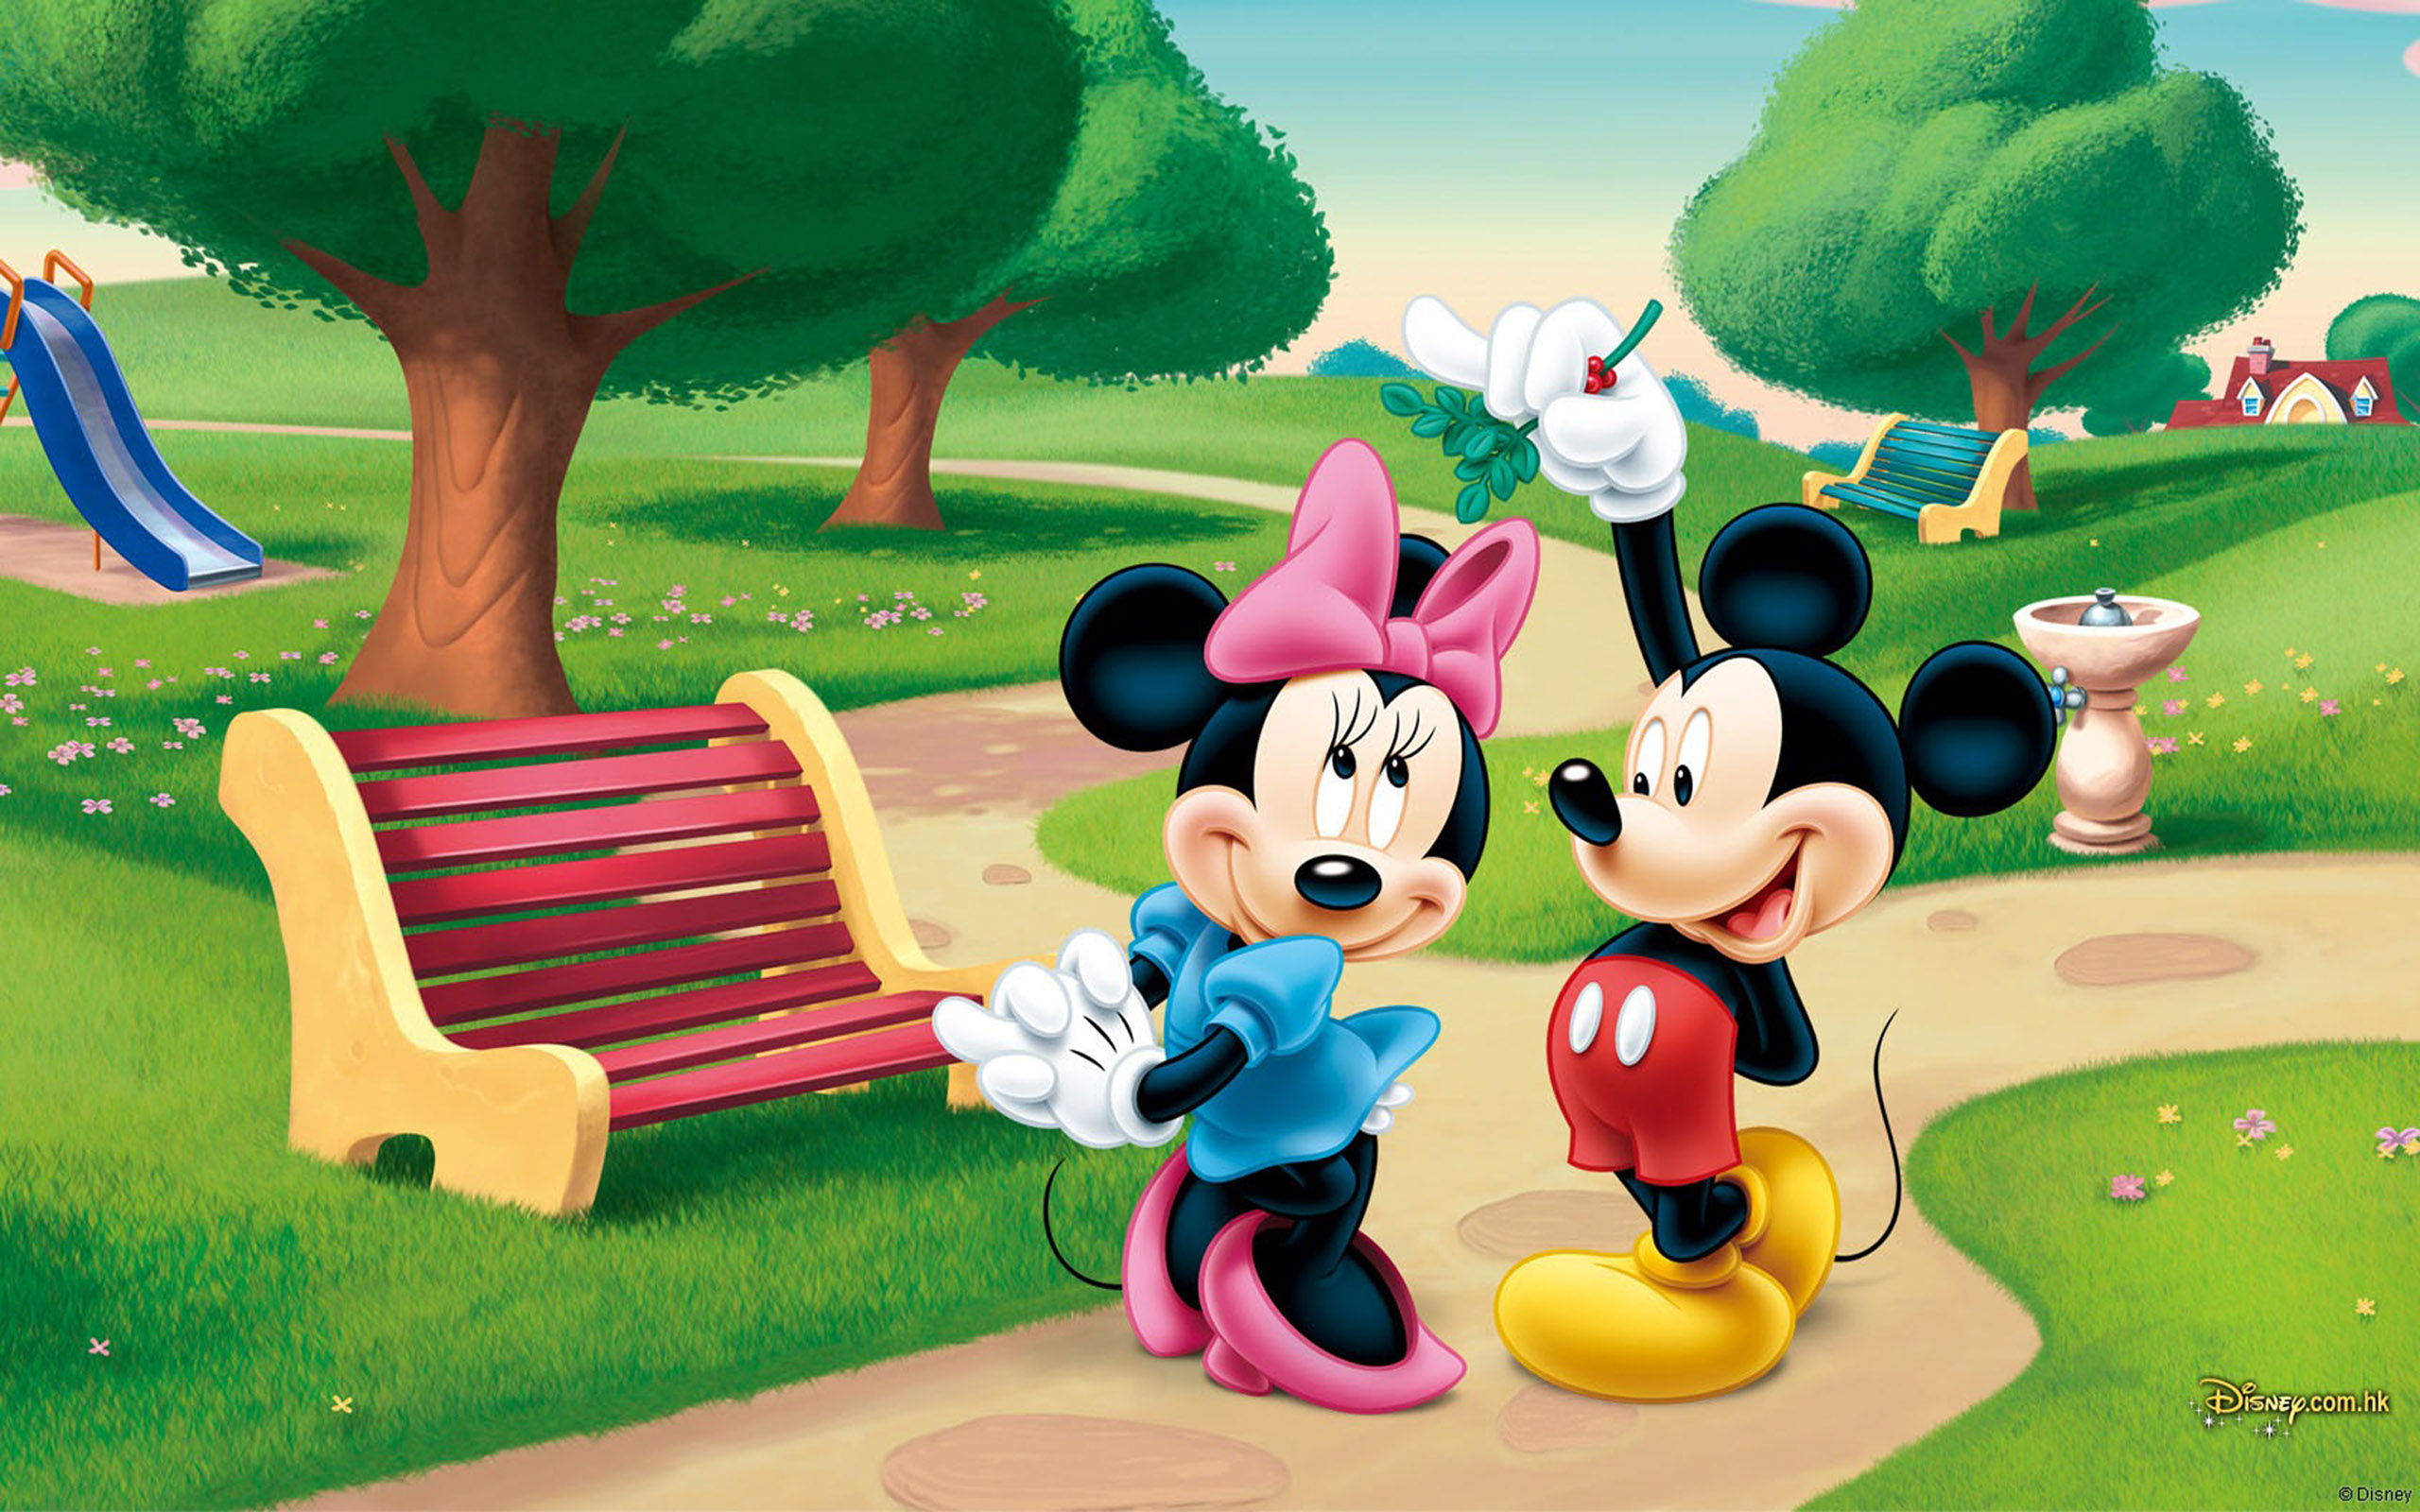 Hd Lock Screen Wallpaper Android Mickey Mouse And Minnie Mouse In The Park Desktop